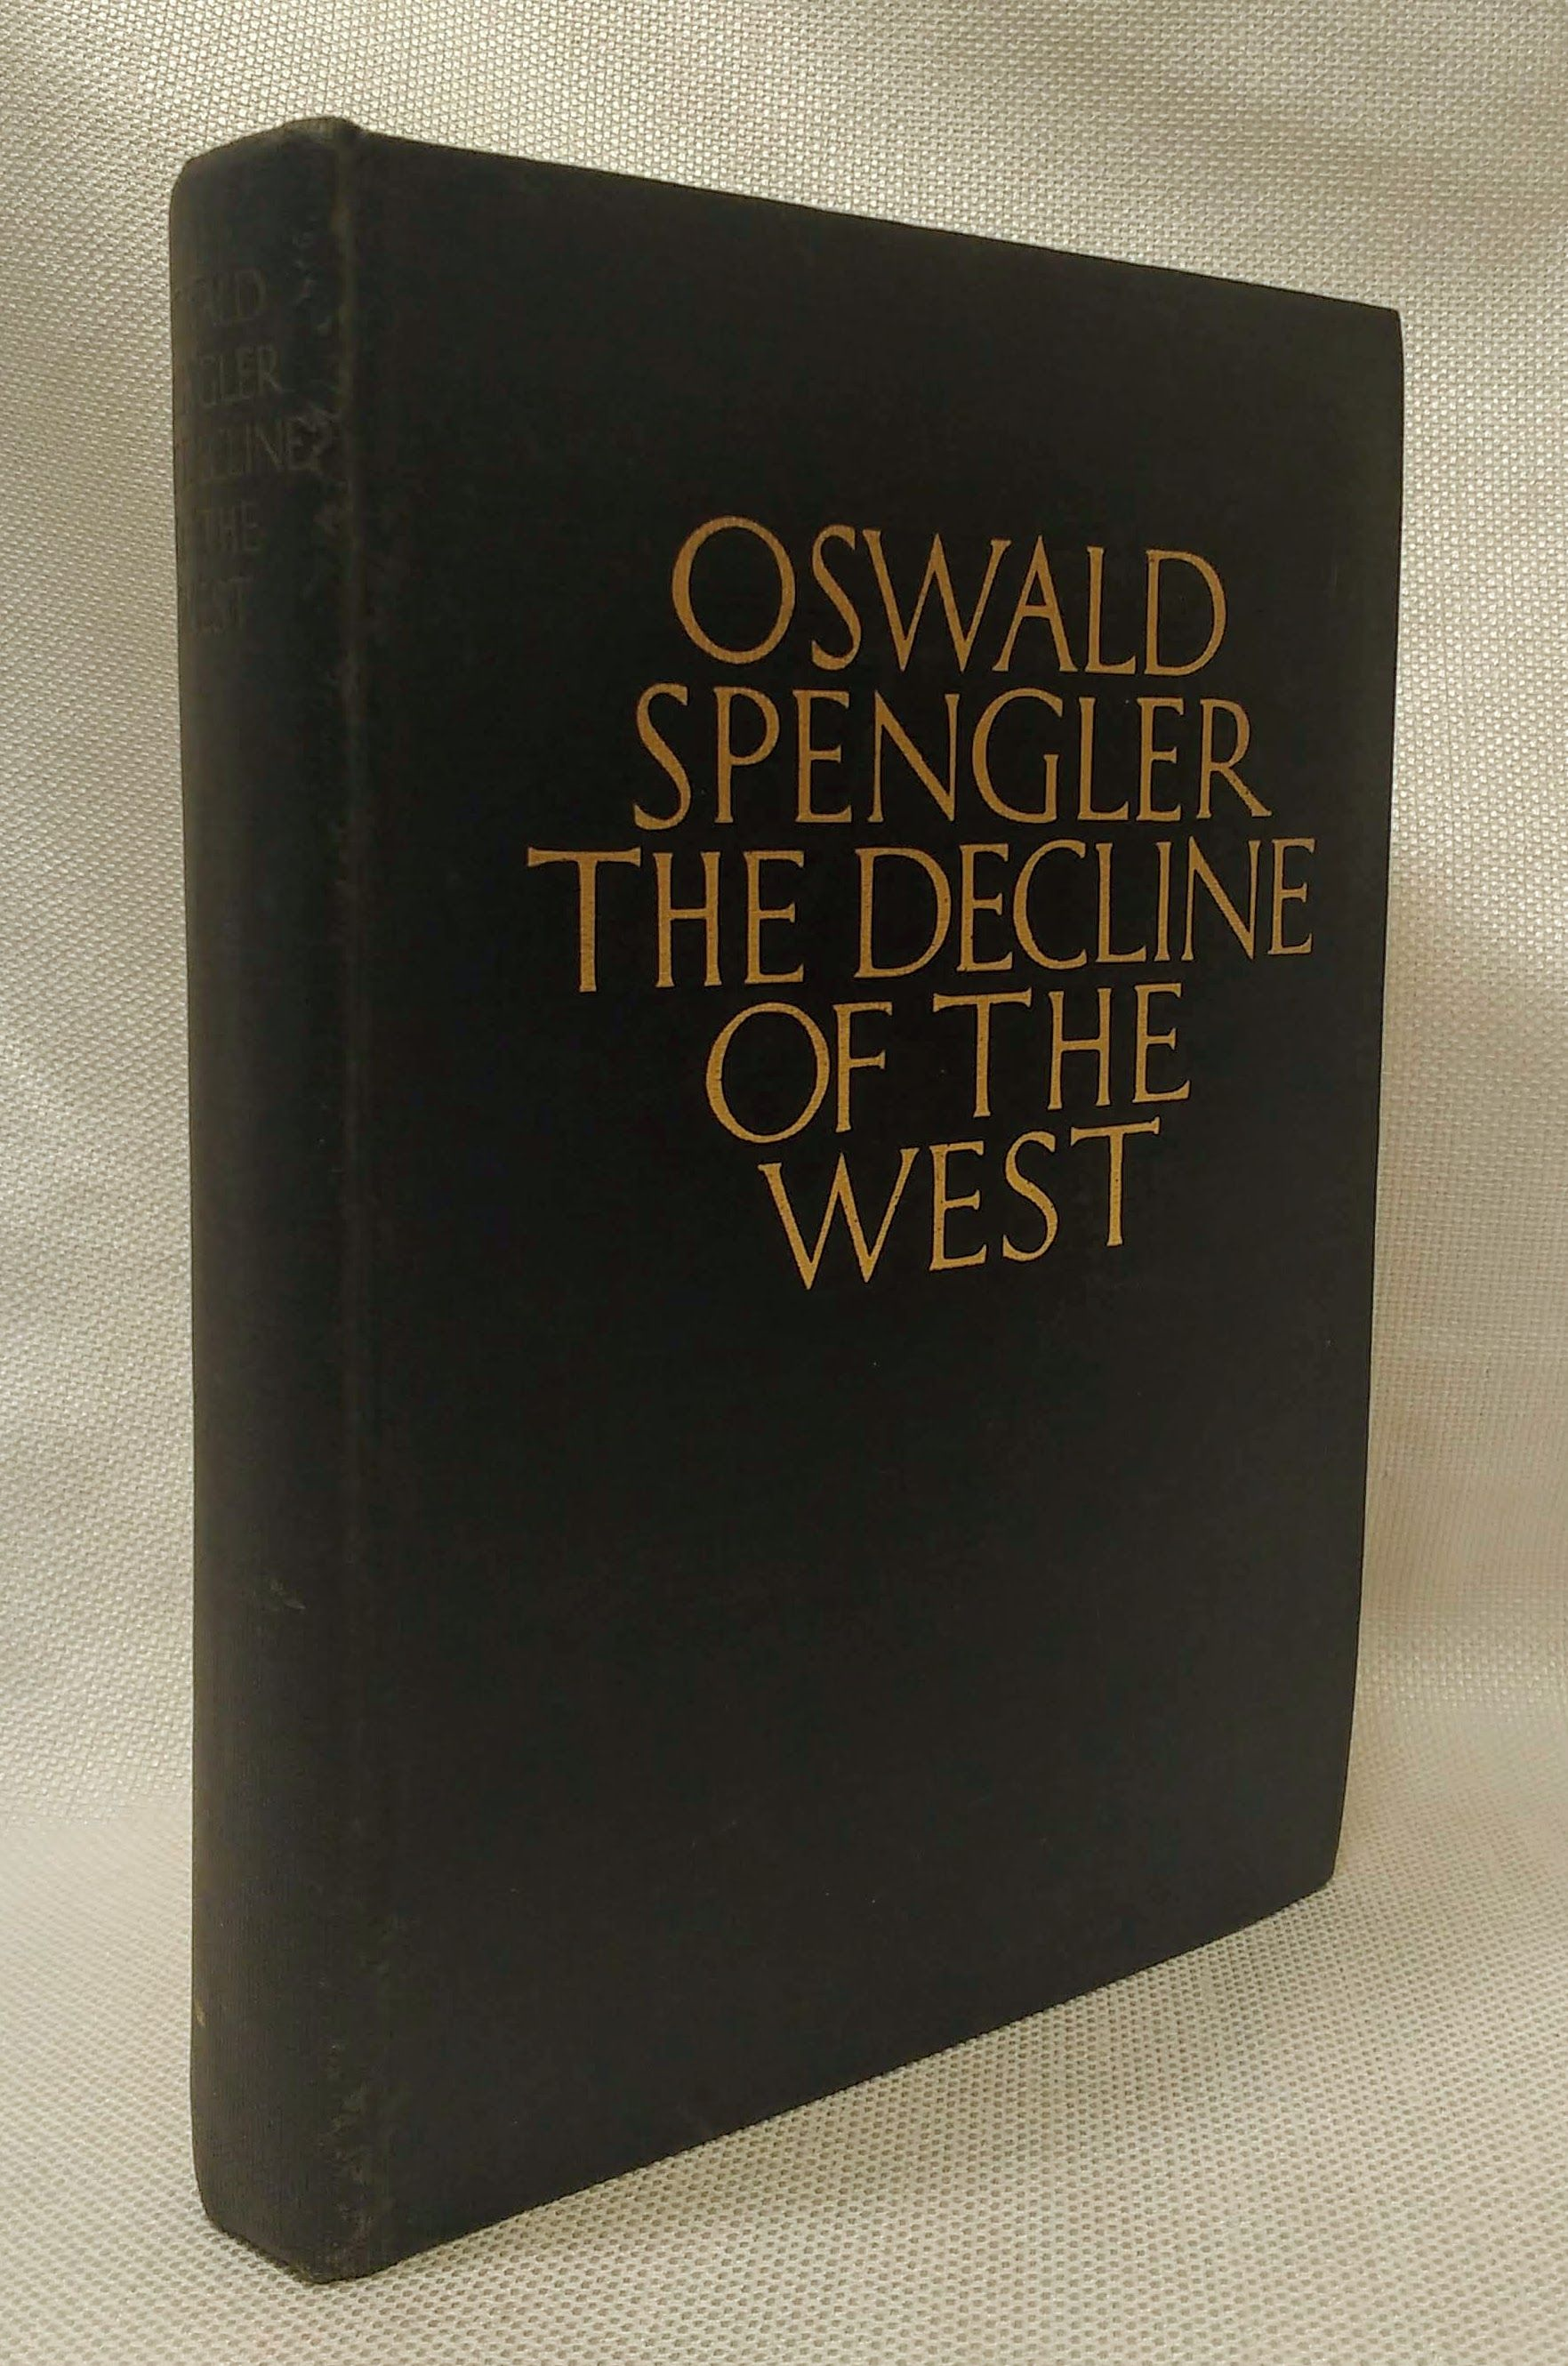 Oswald Spengler The Decline of the West, Volume One: Form and Actuality, Oswald Spengler; Charles Francis Atkinson [Translator]